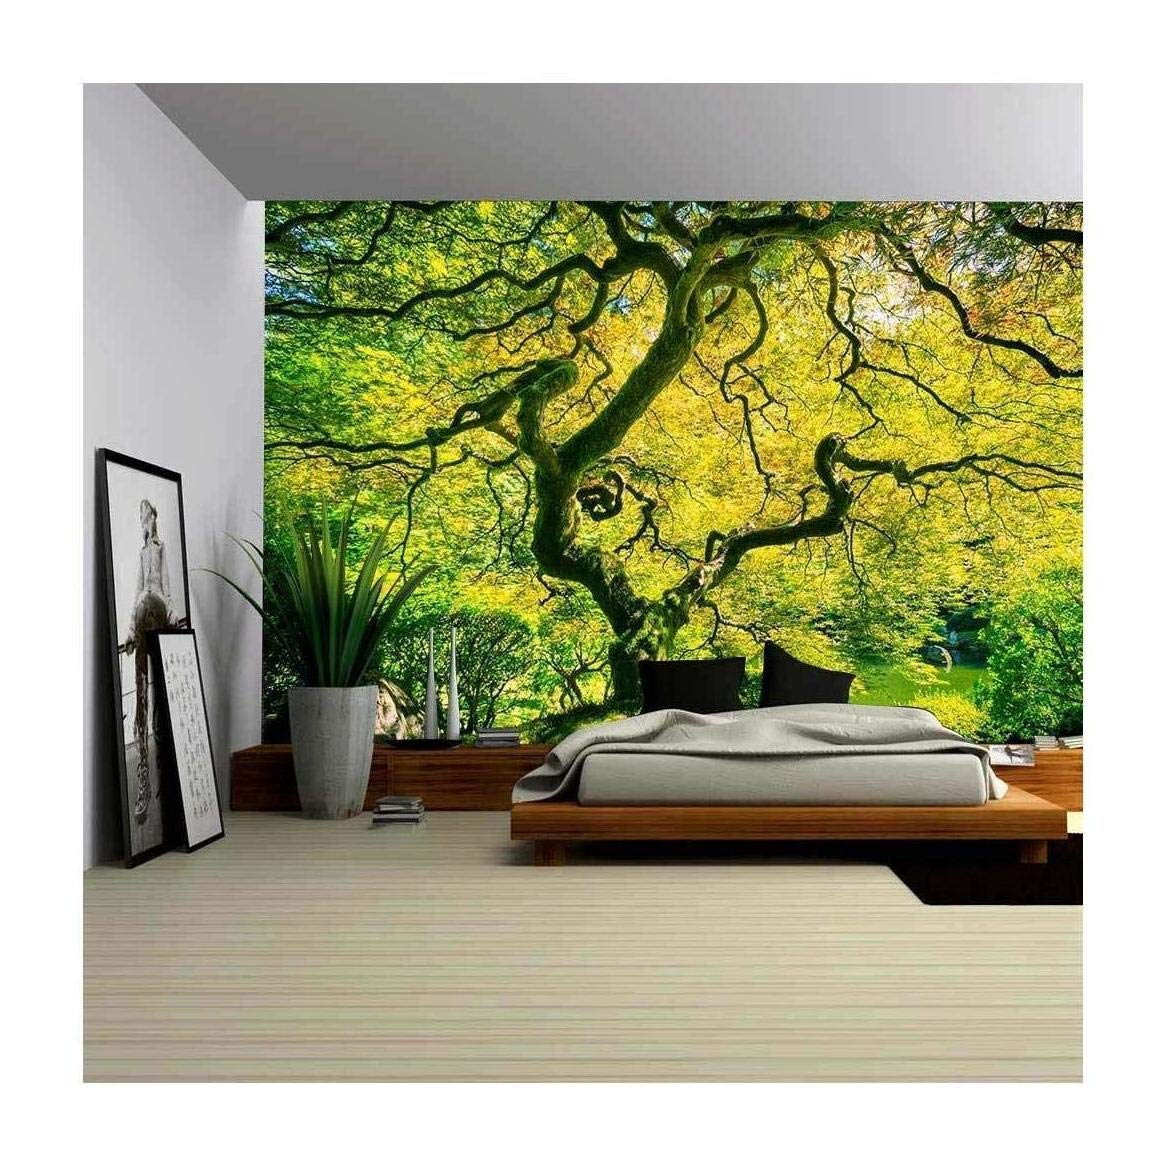 nature wall murals amazon comwall26 amazing green japanese maple tree, nature garden removable wall mural self